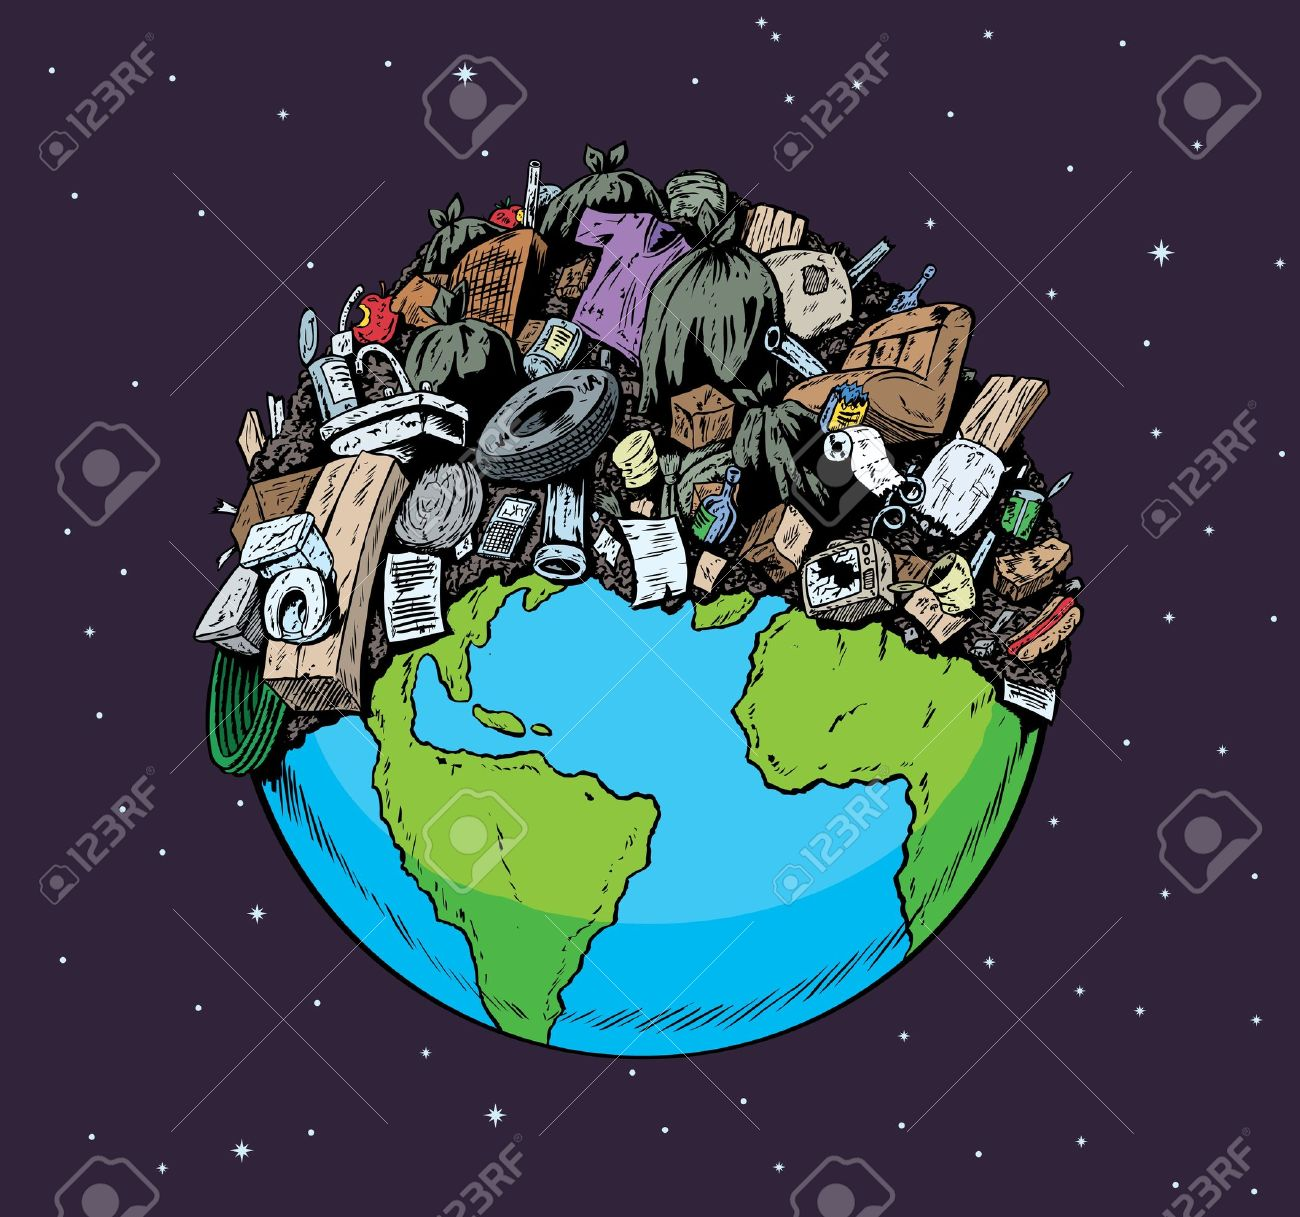 landfill: Polluted Planet